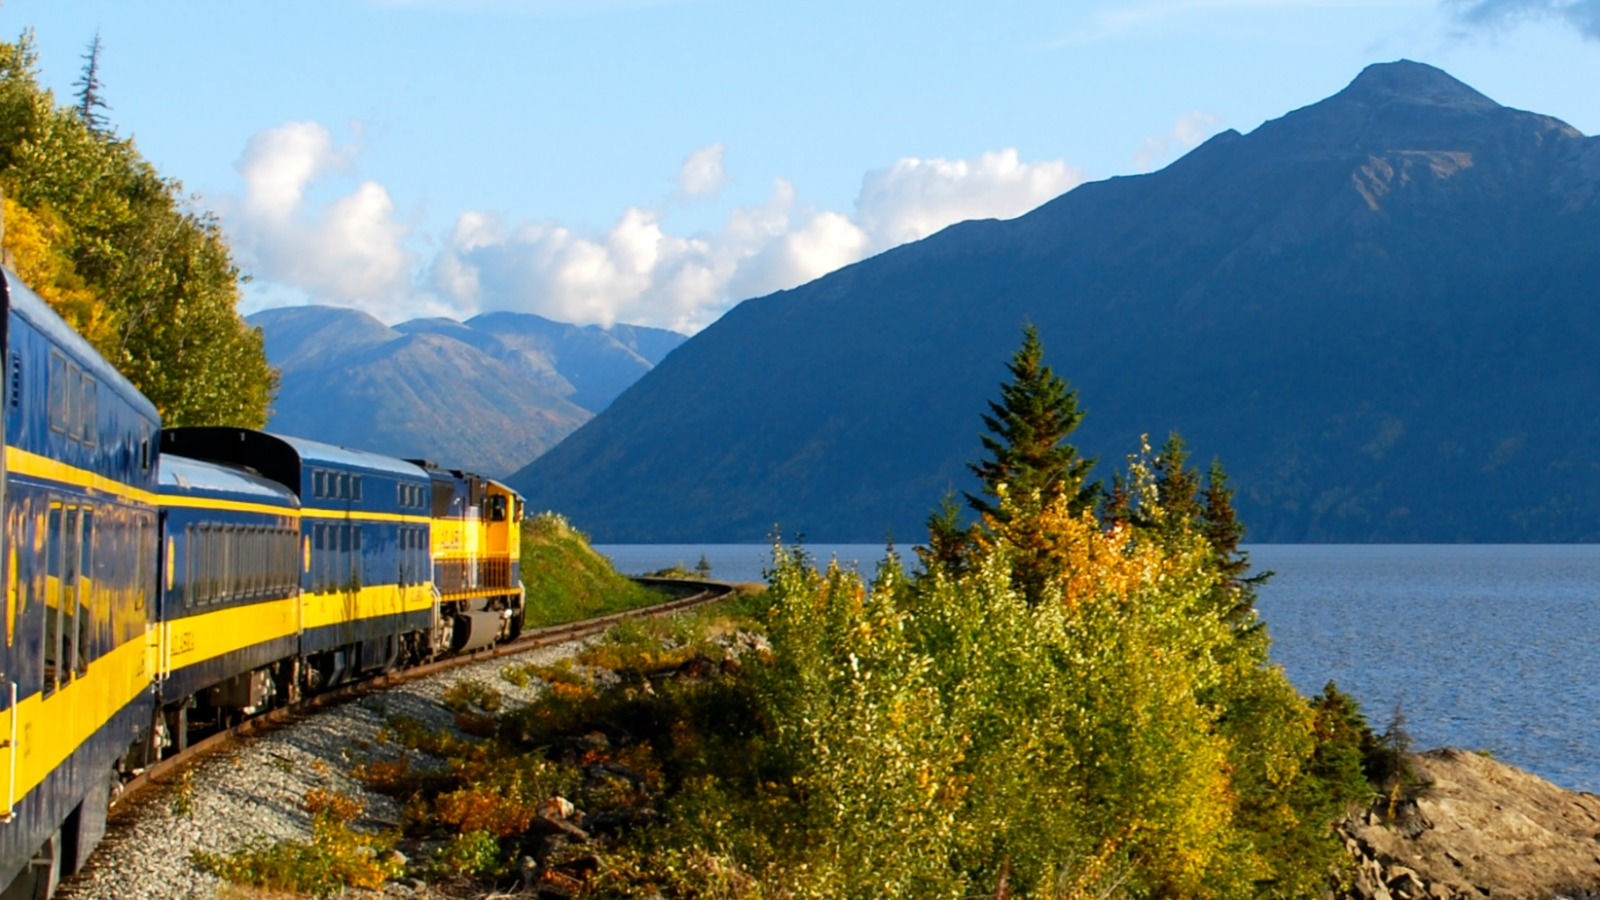 Things to do in Anchorage - Alaska Railroad